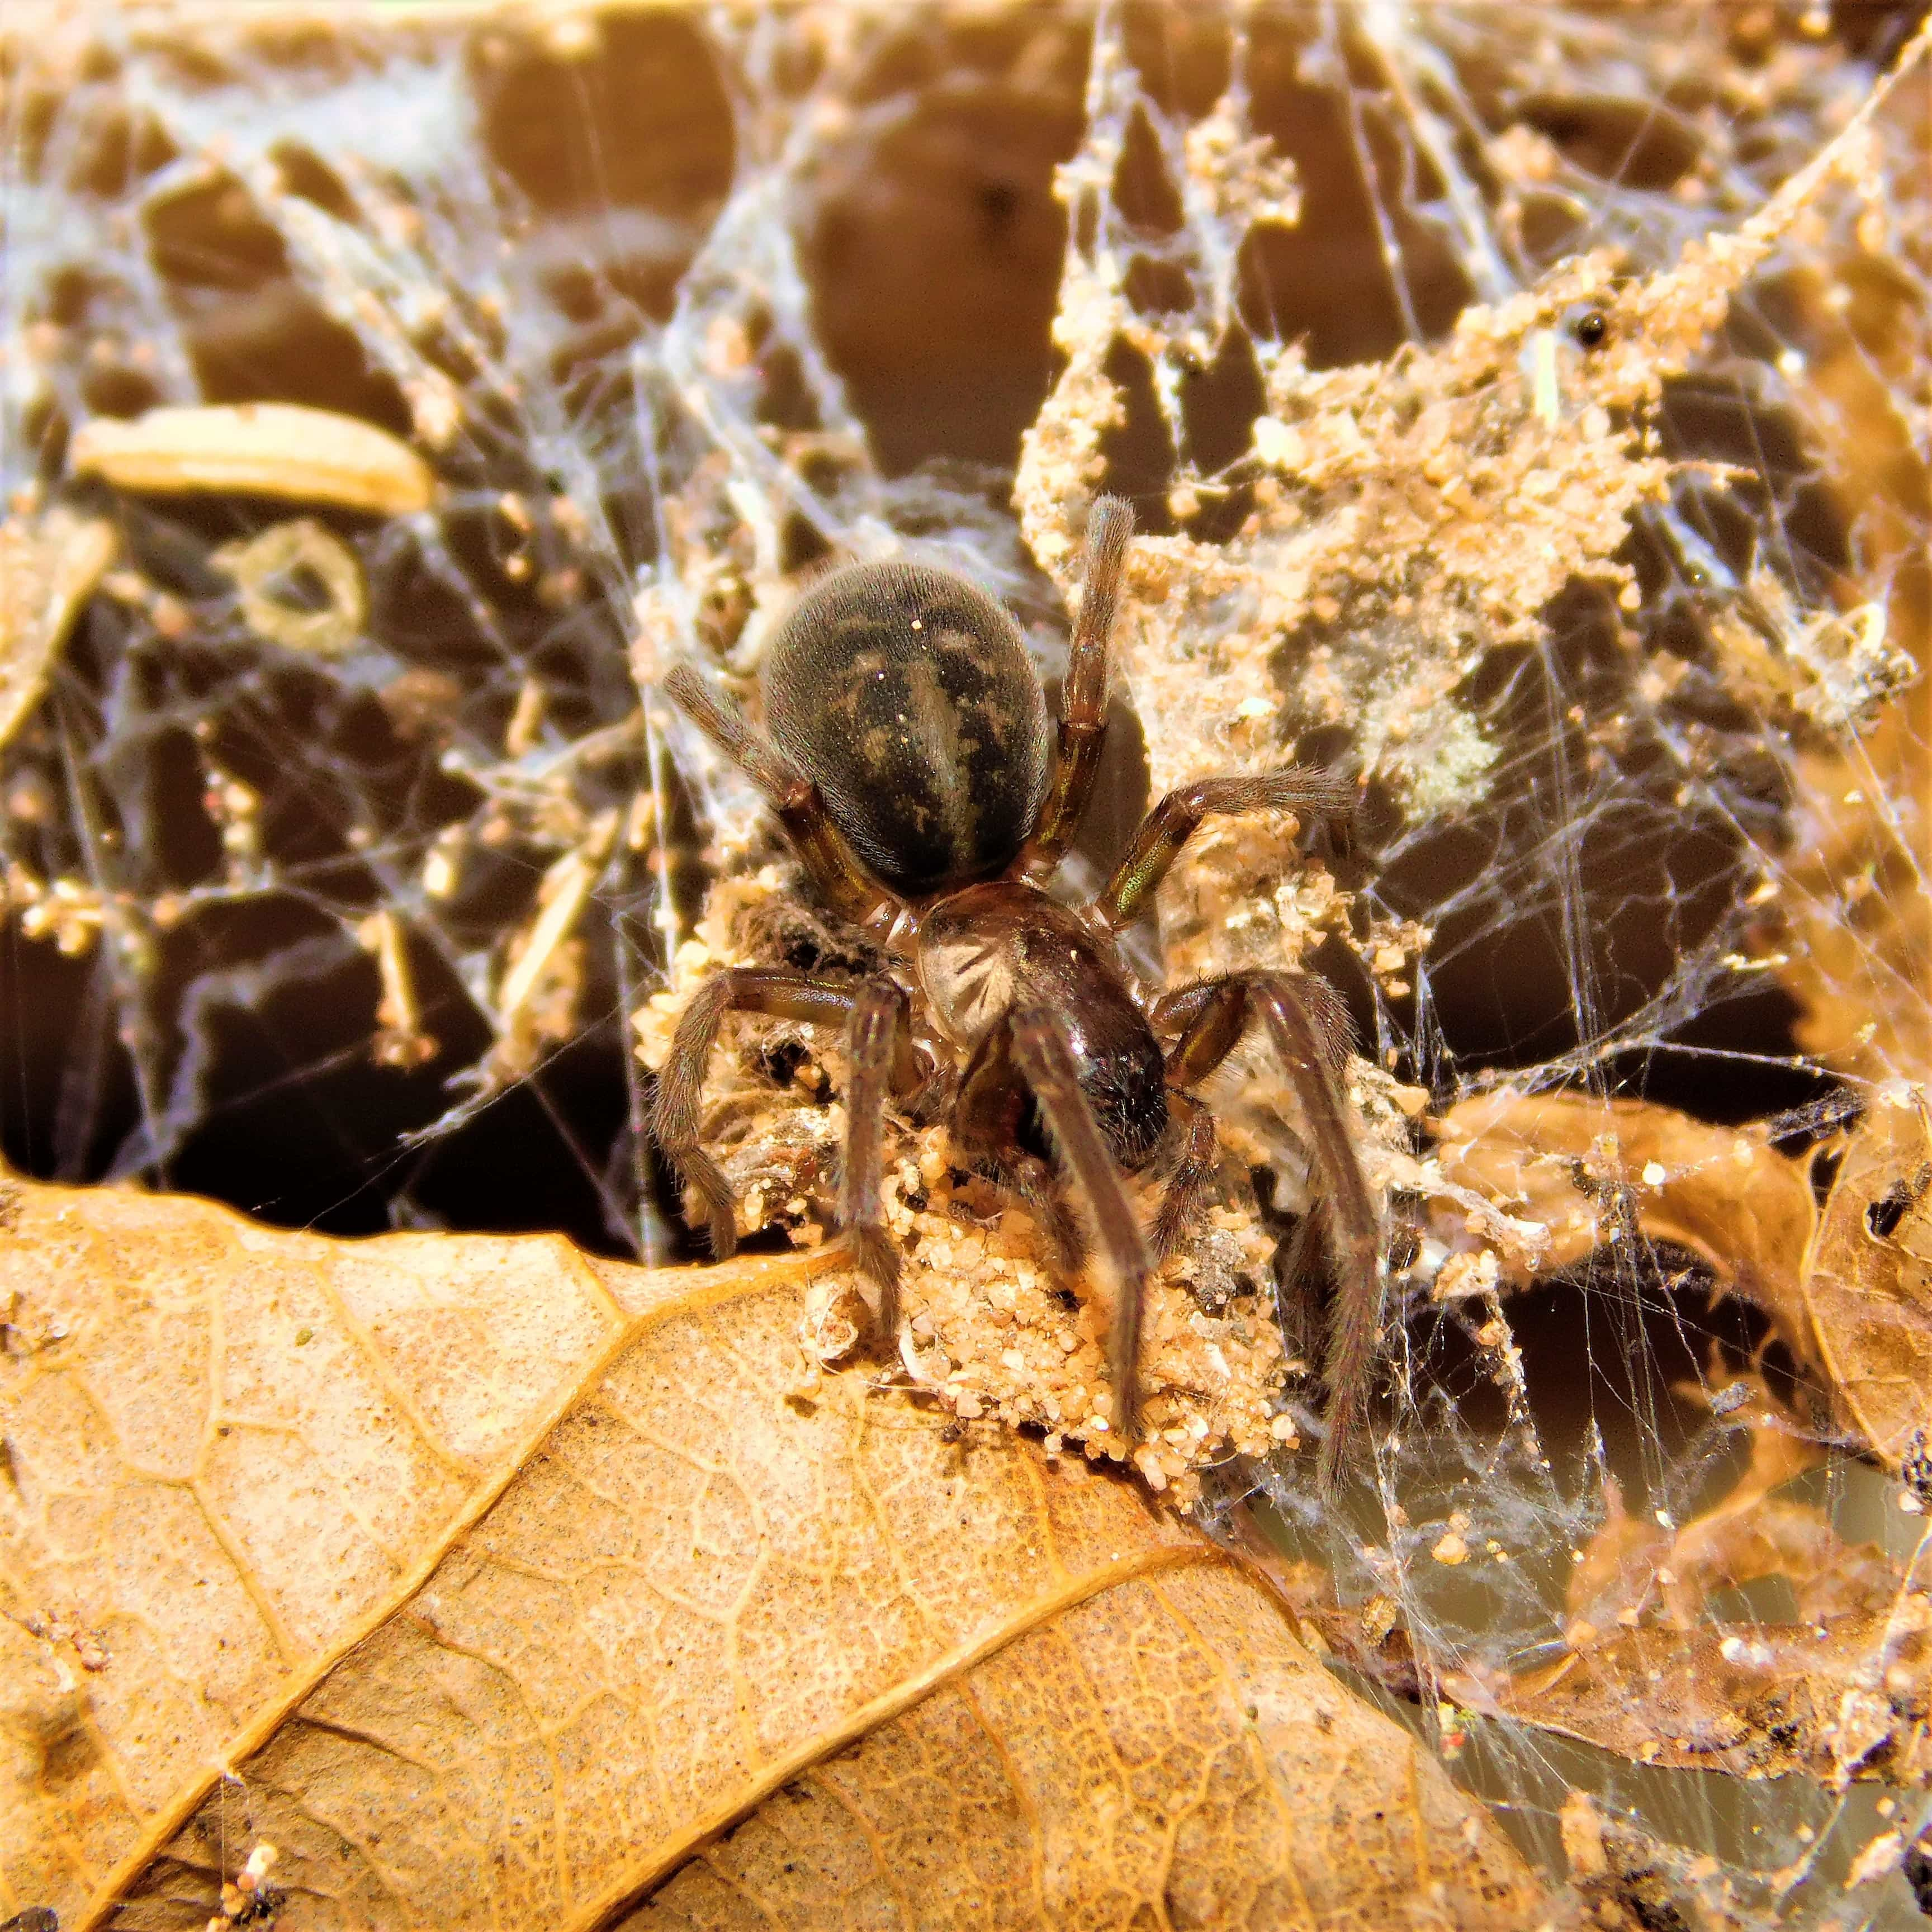 Picture of Amaurobius ferox (Black Lace-Weaver) - Female - Dorsal,Webs